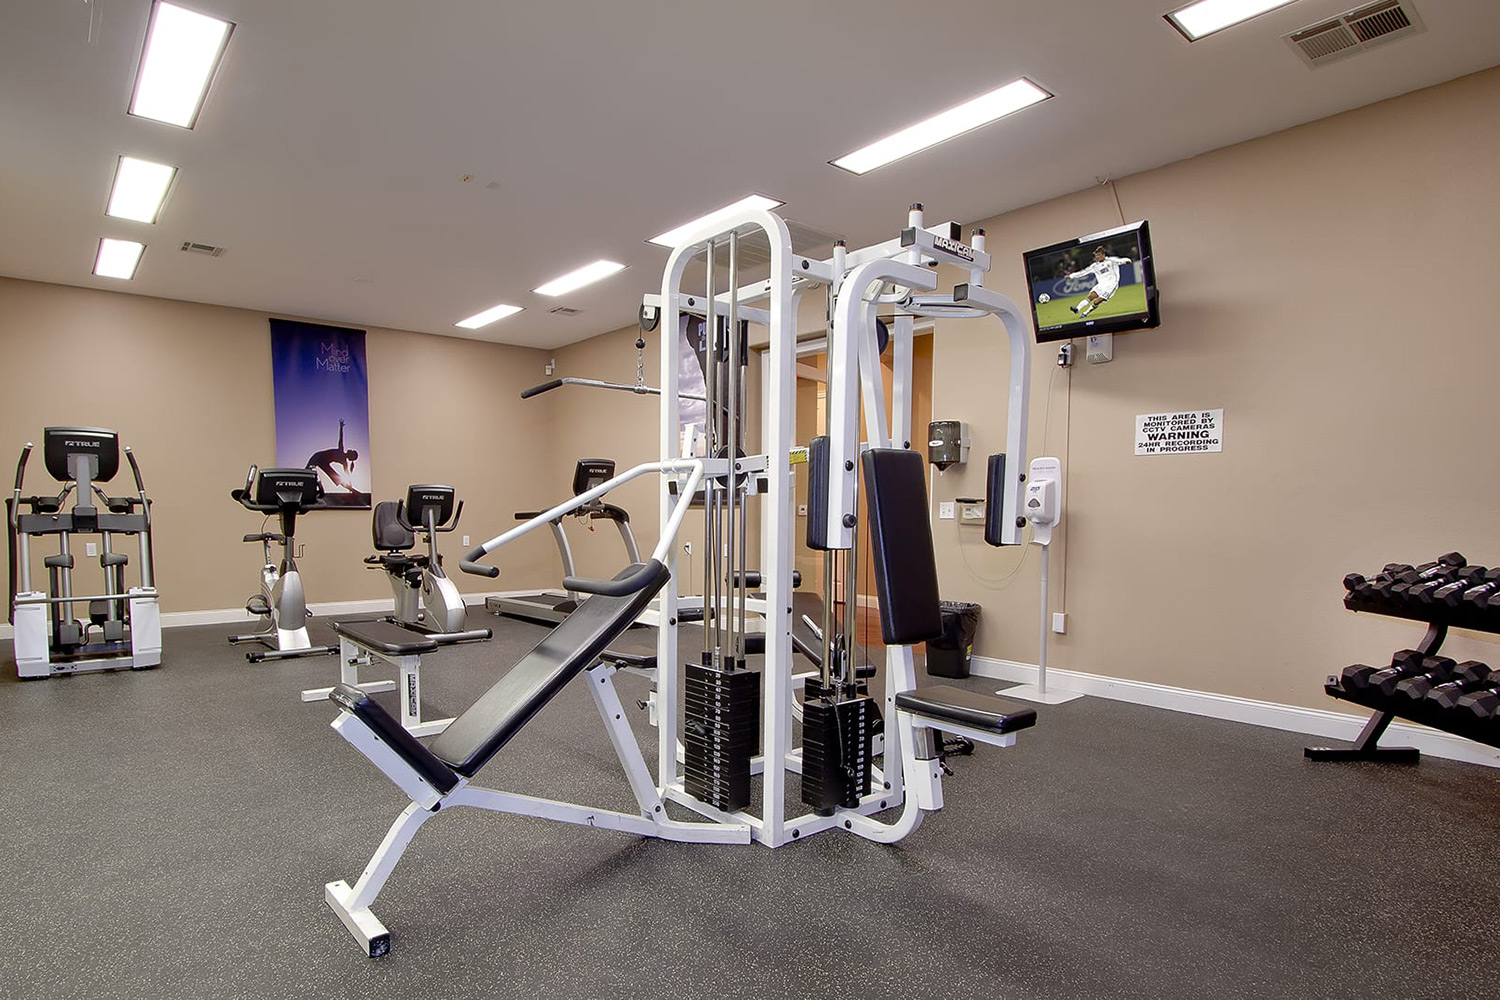 Tuscany's fitness center with a variety of weight machines, dumbbells, and cardio equipment.